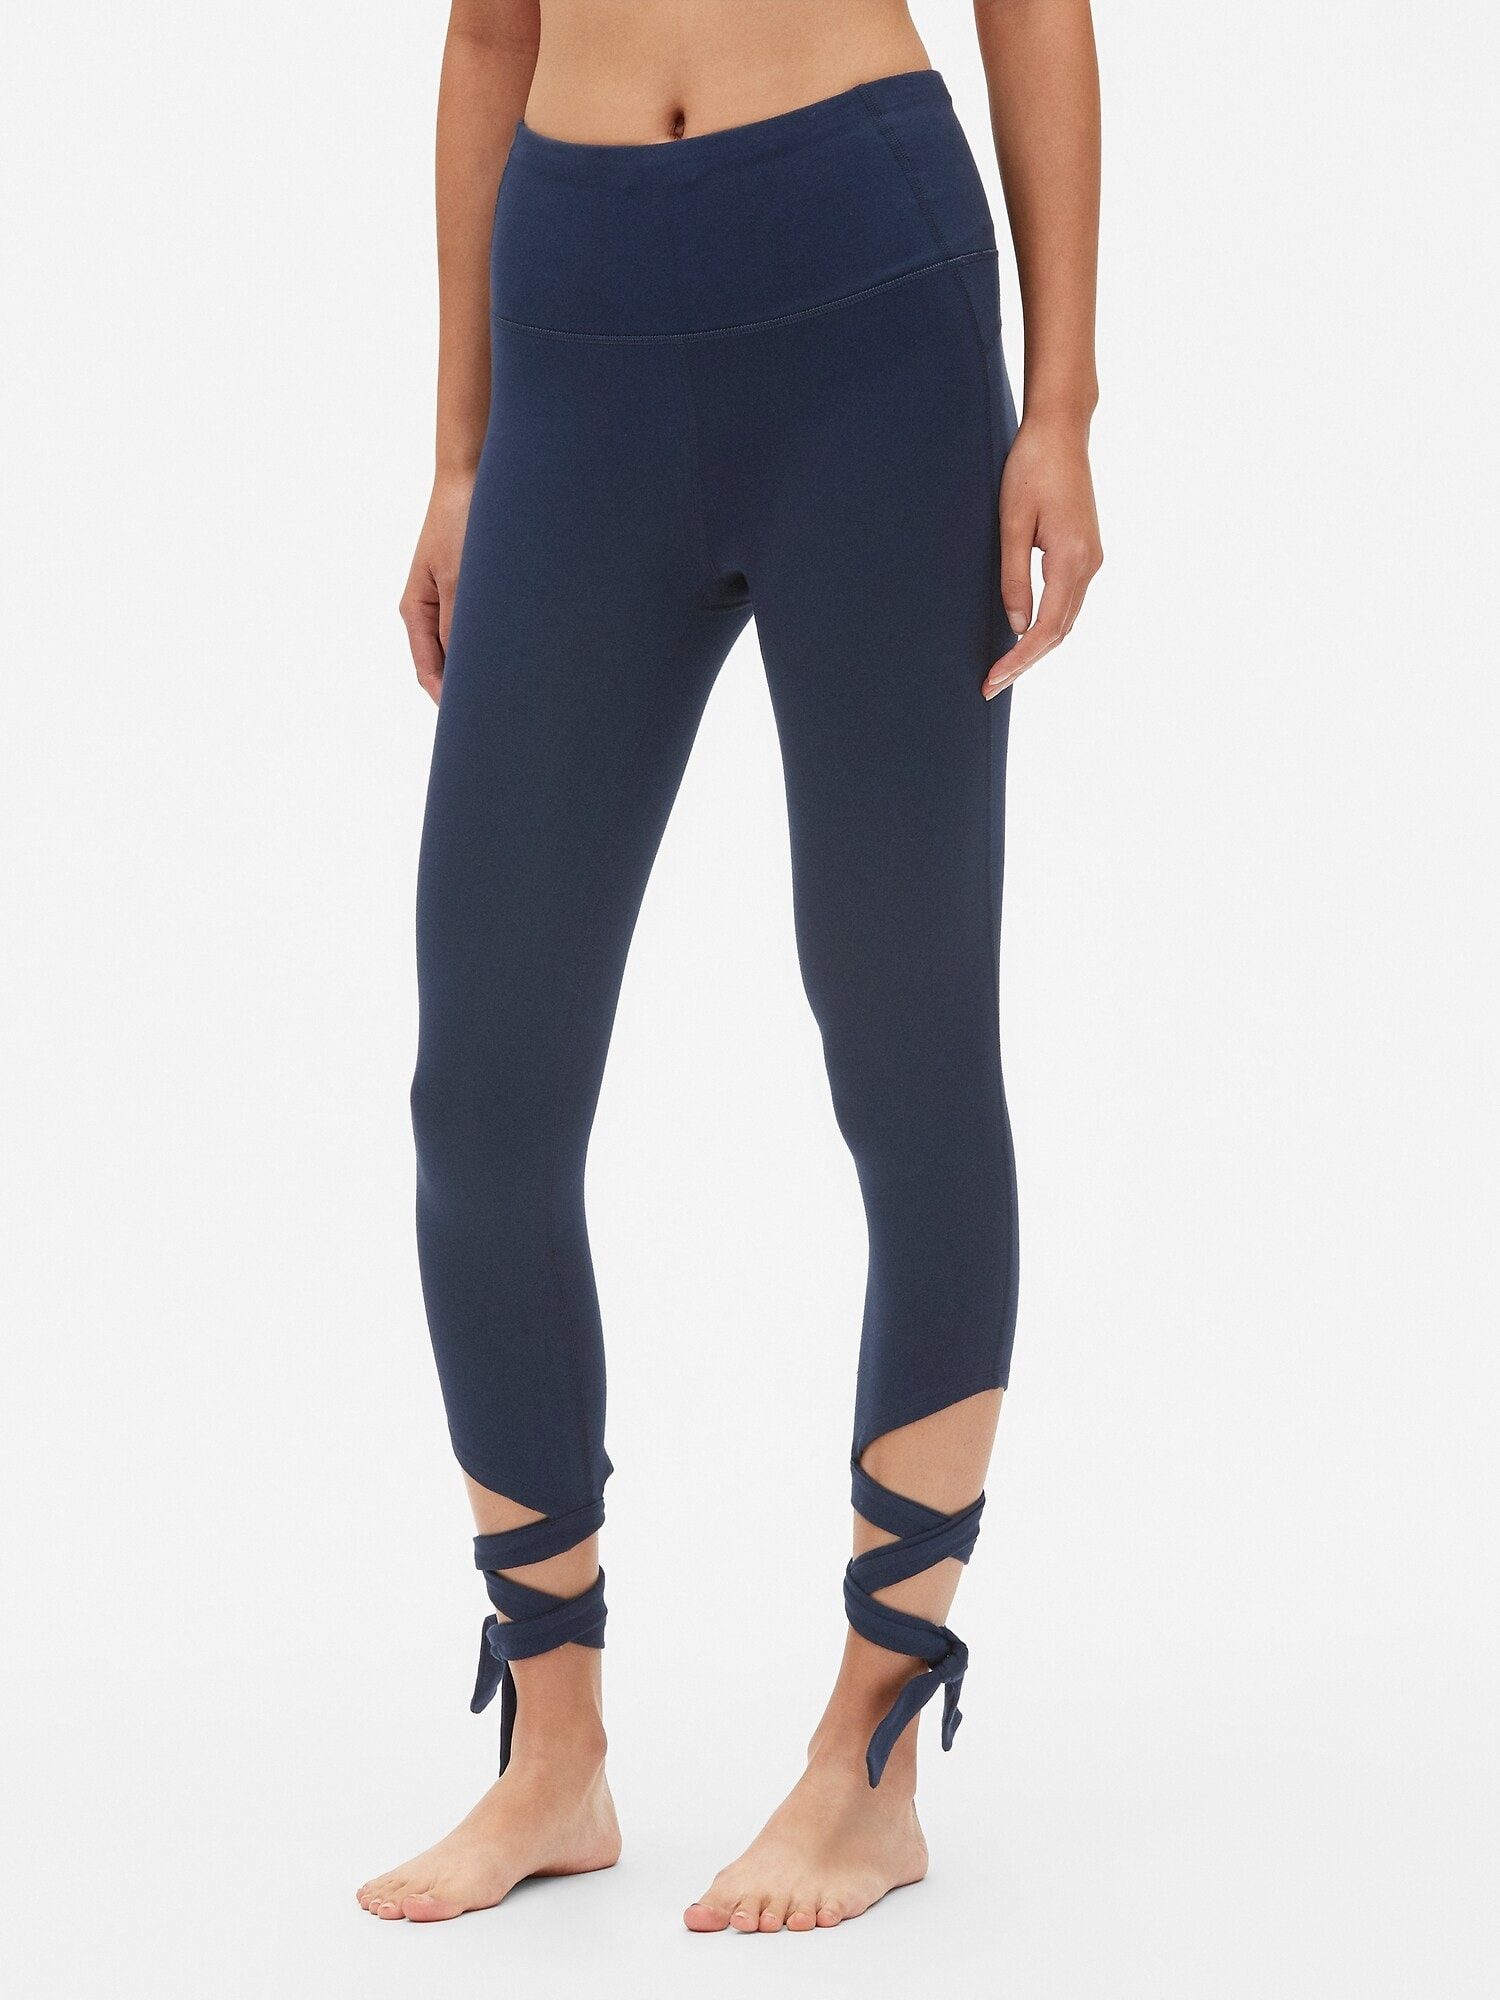 GapFit High Rise Barre Strap 7 8 Leggings